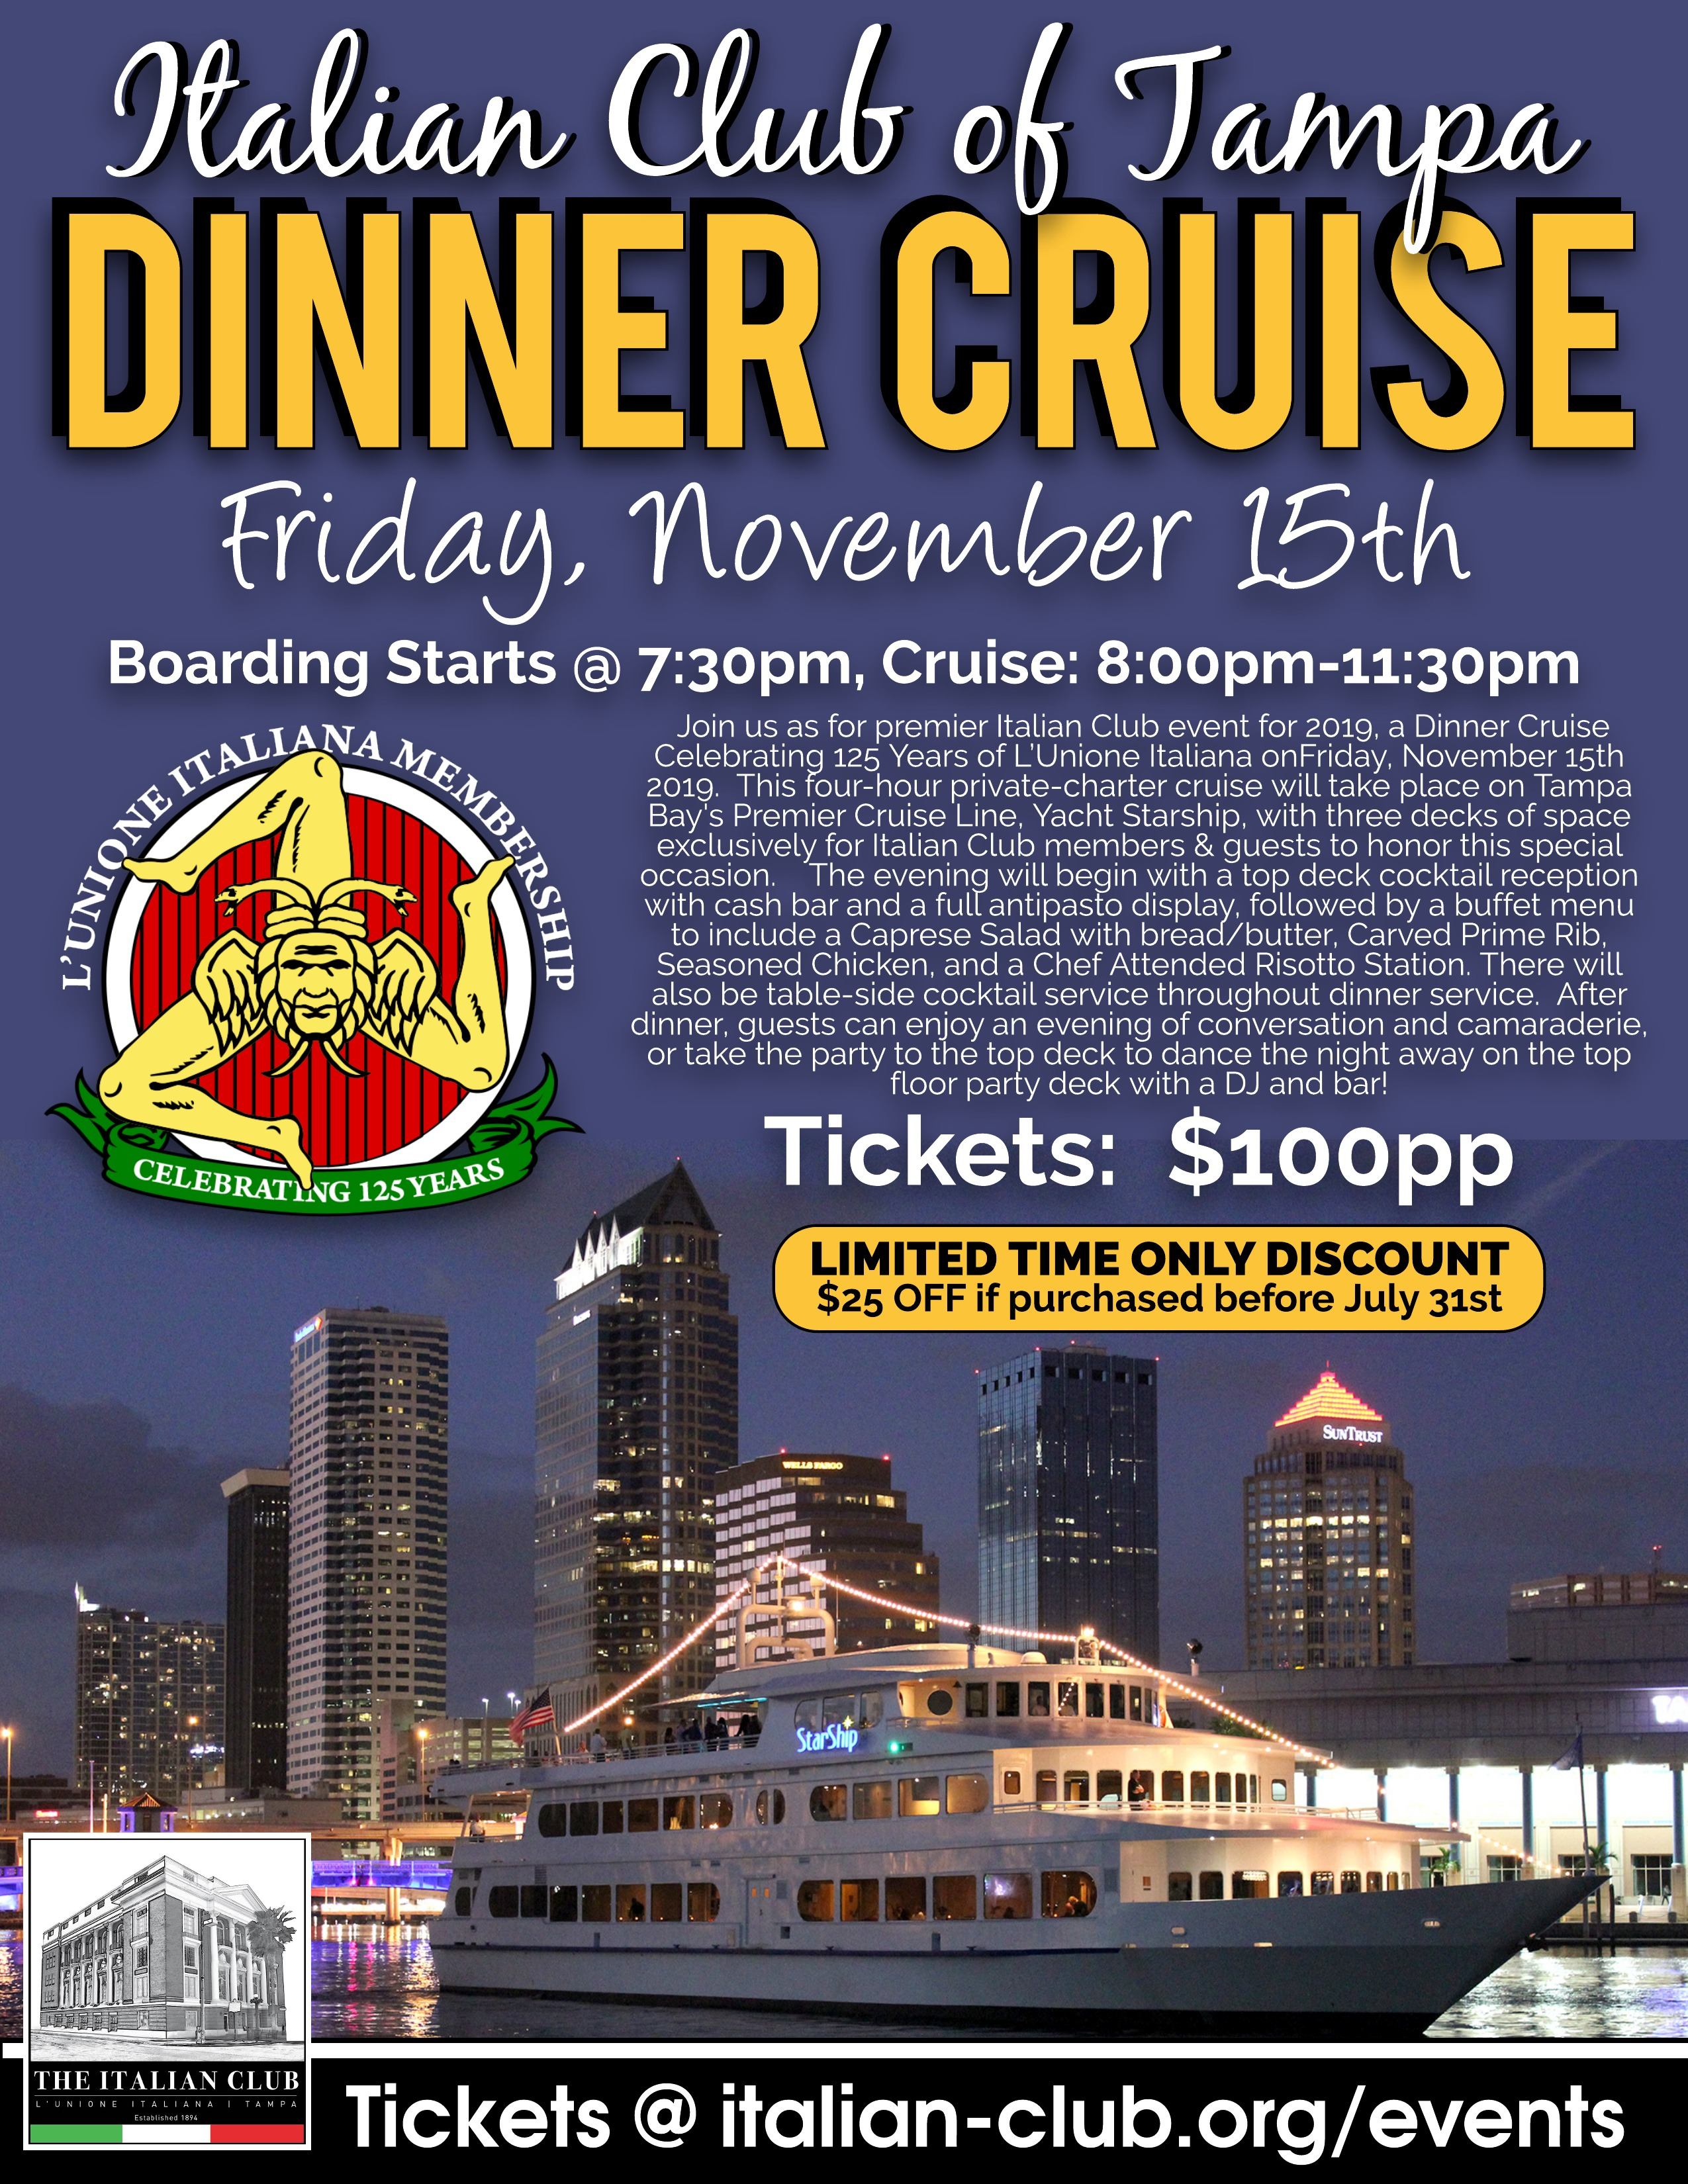 REVISED IC Dinner Cruise 125 Years